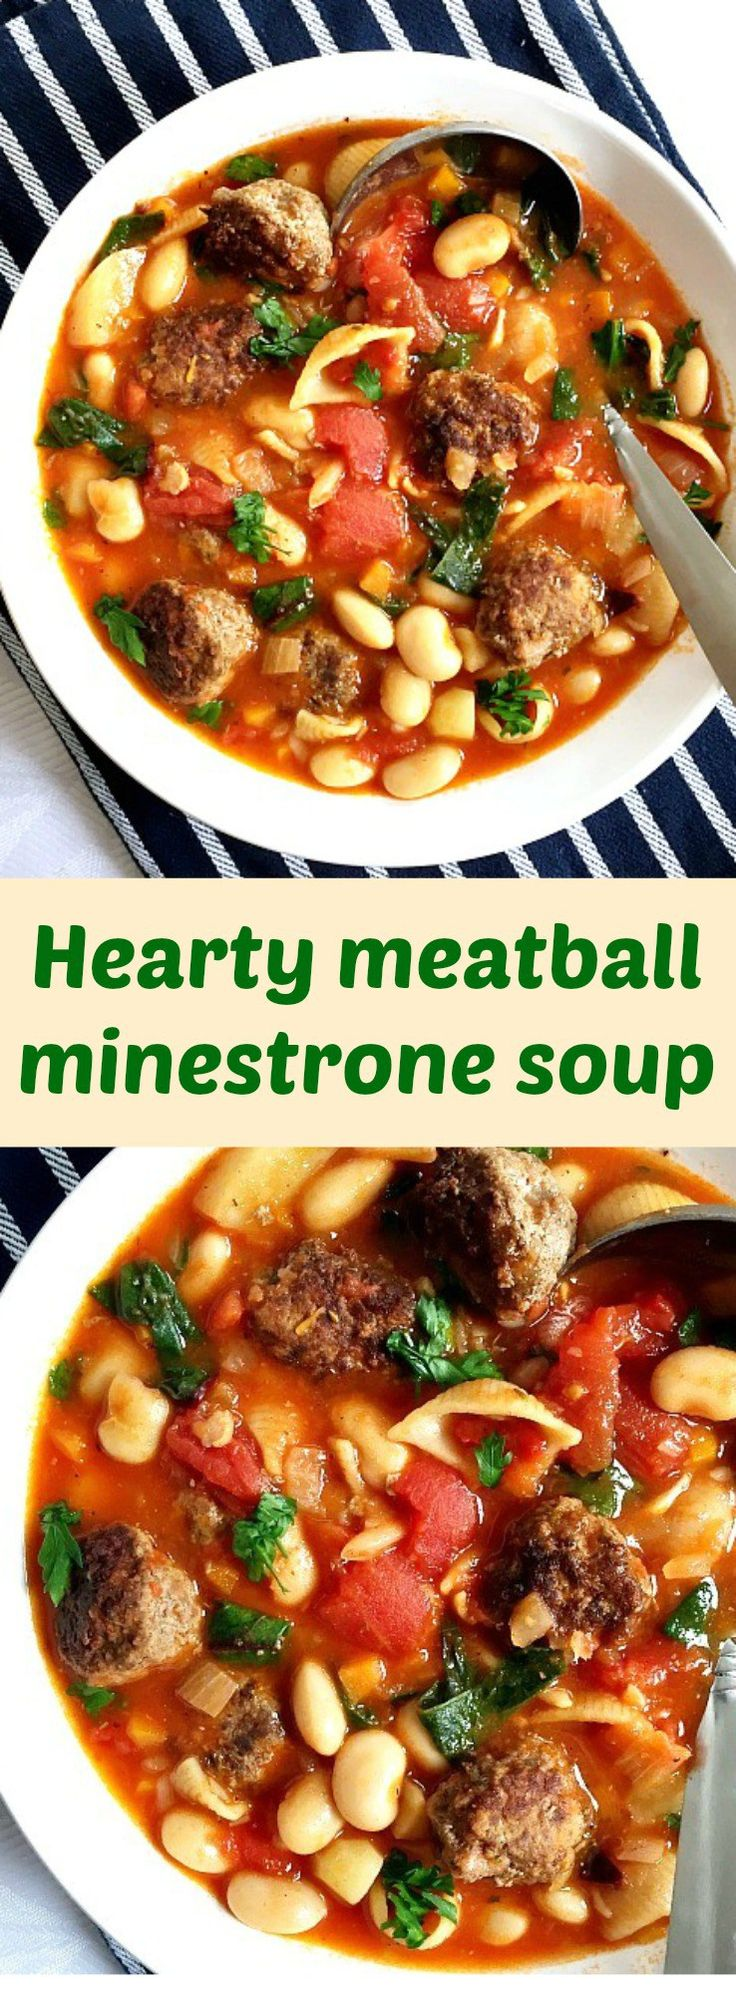 Hearty meatball minestrone soup with cannellini beans, carrots, wholemeal pasta, plum tomatoes and spinach, a classic Italian soup that is soothing and comforting. A great recipe for a delicious meal.